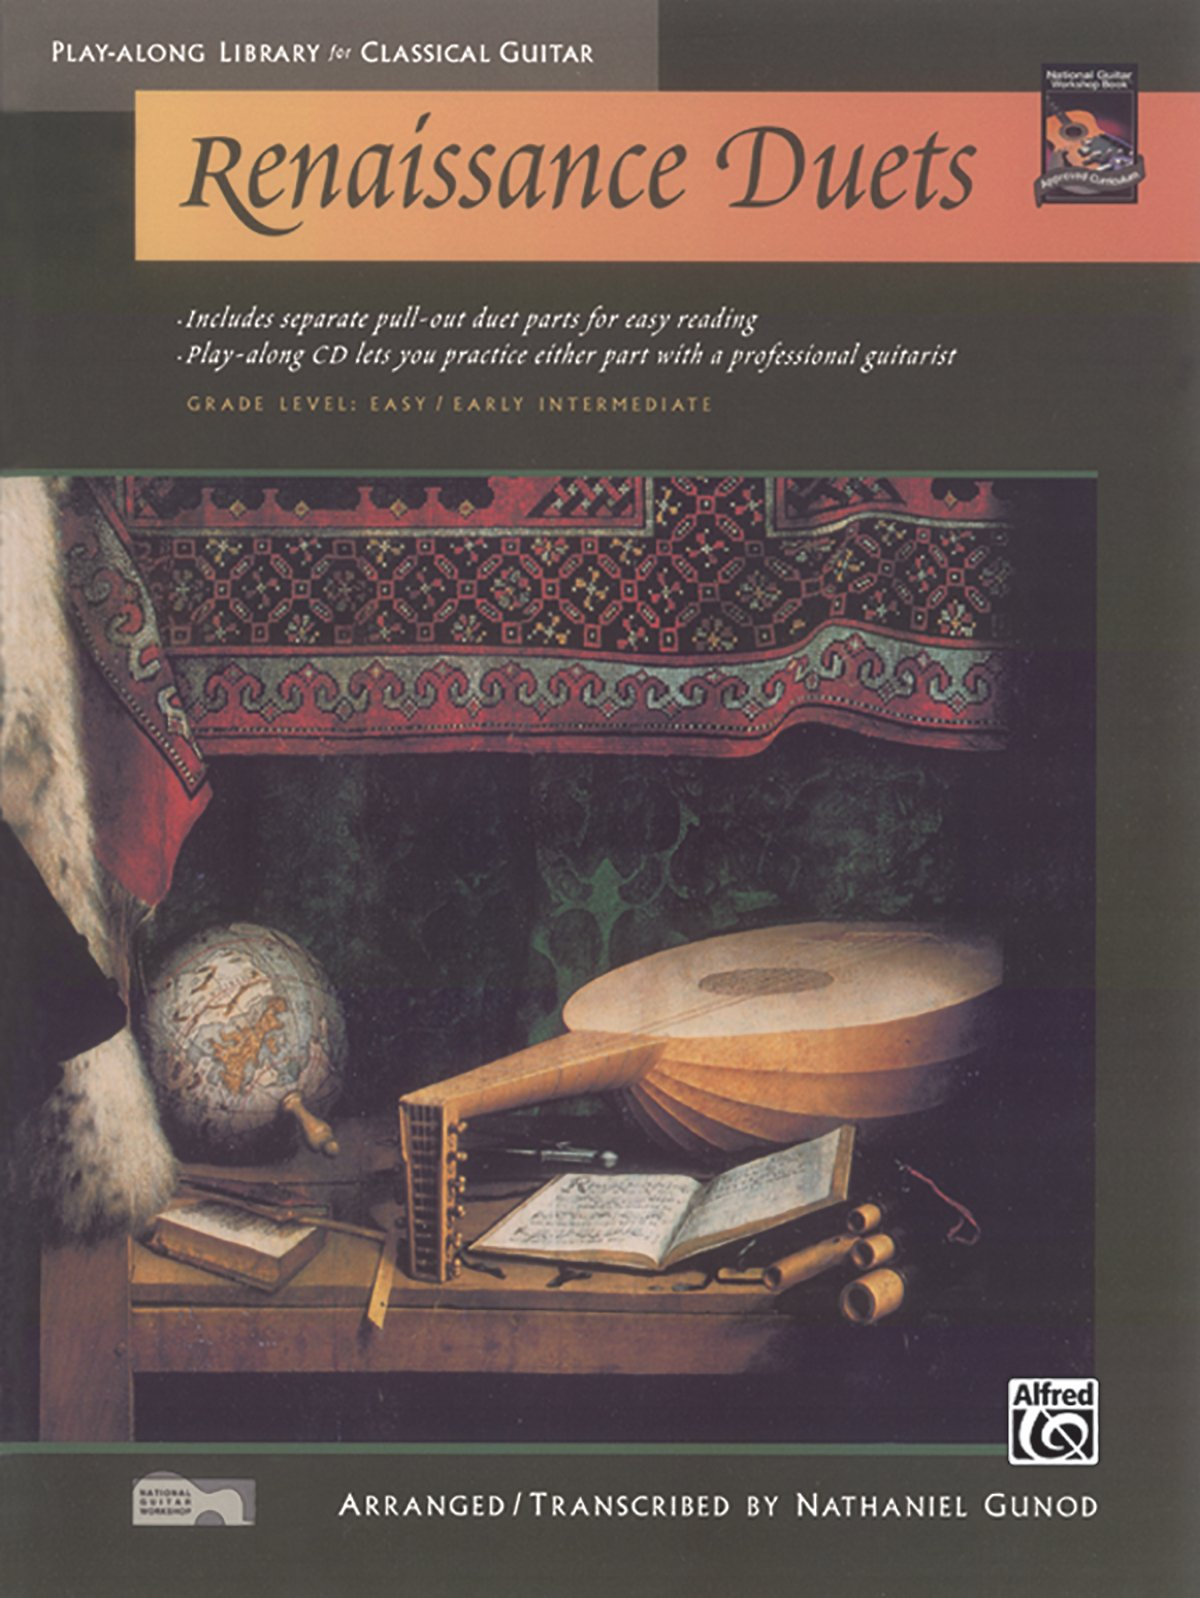 Image for Renaissance Duets (Play-Along Library for Classical Guitar)